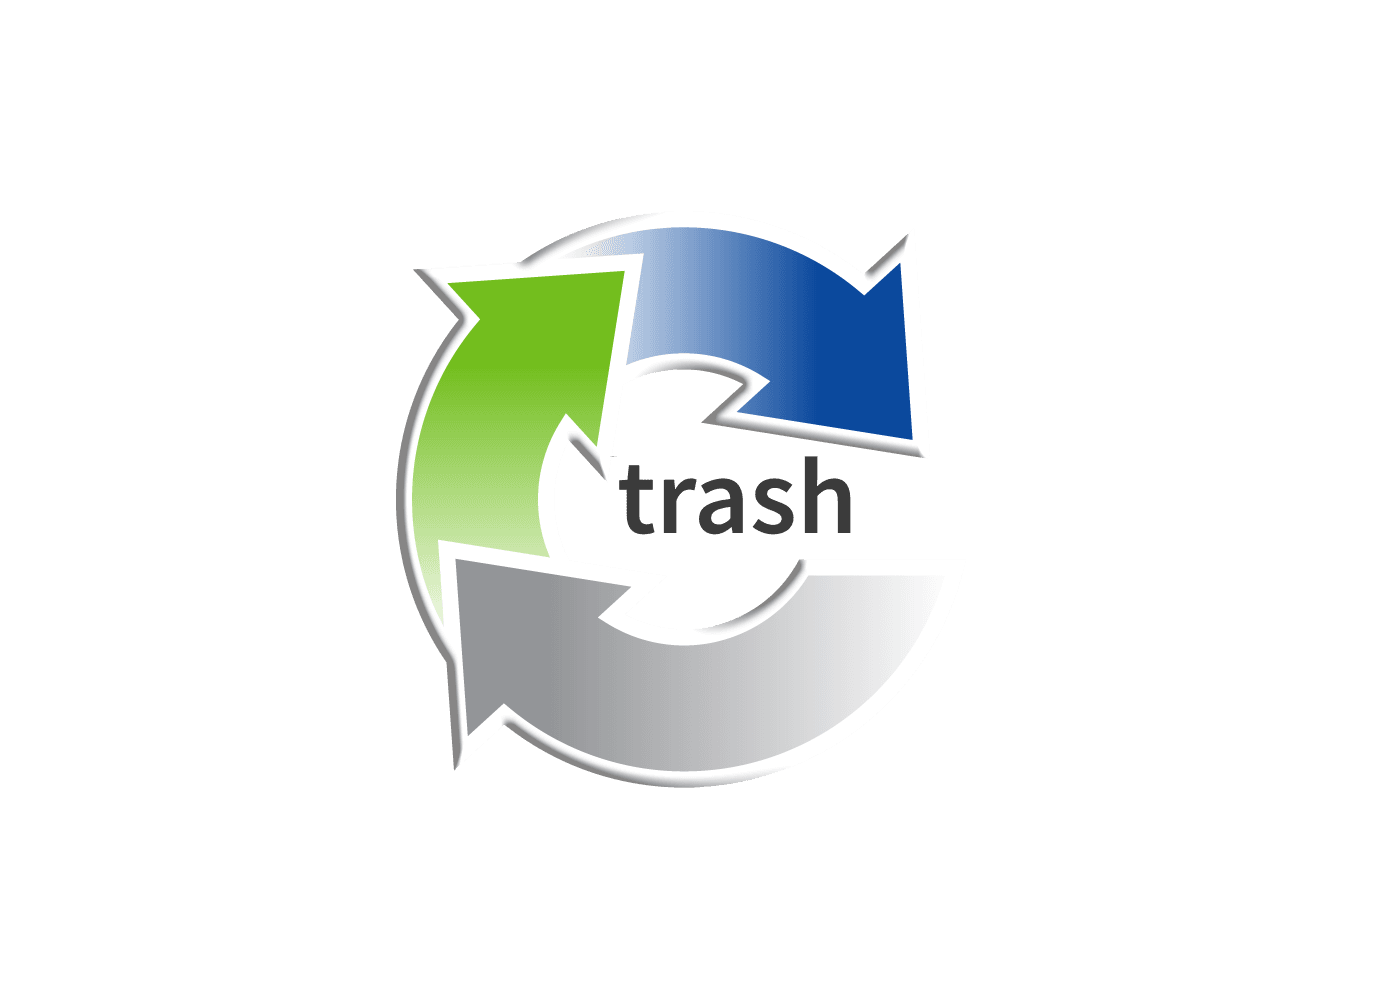 img.trash logo